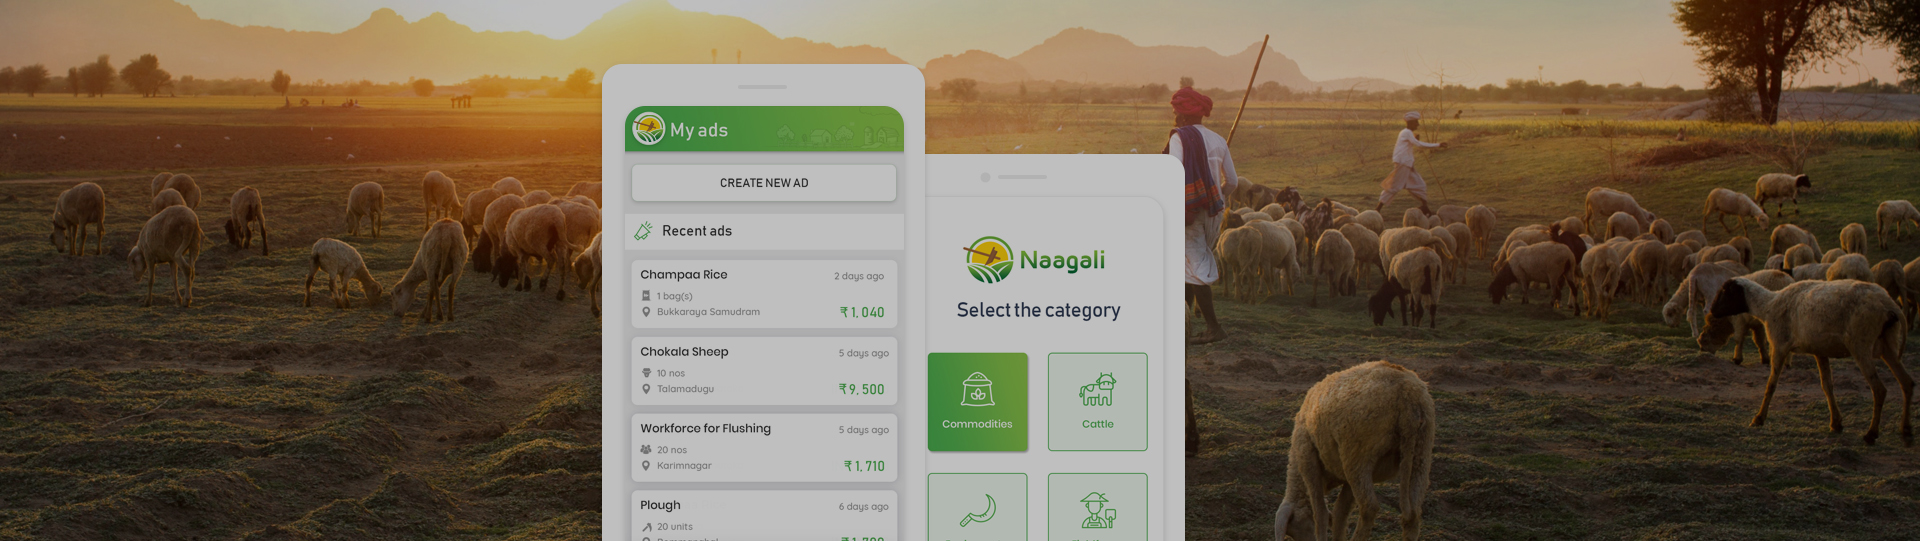 Nextbrain's Initiative for Helping Farmers in AP & Telangana with Mobile App Development